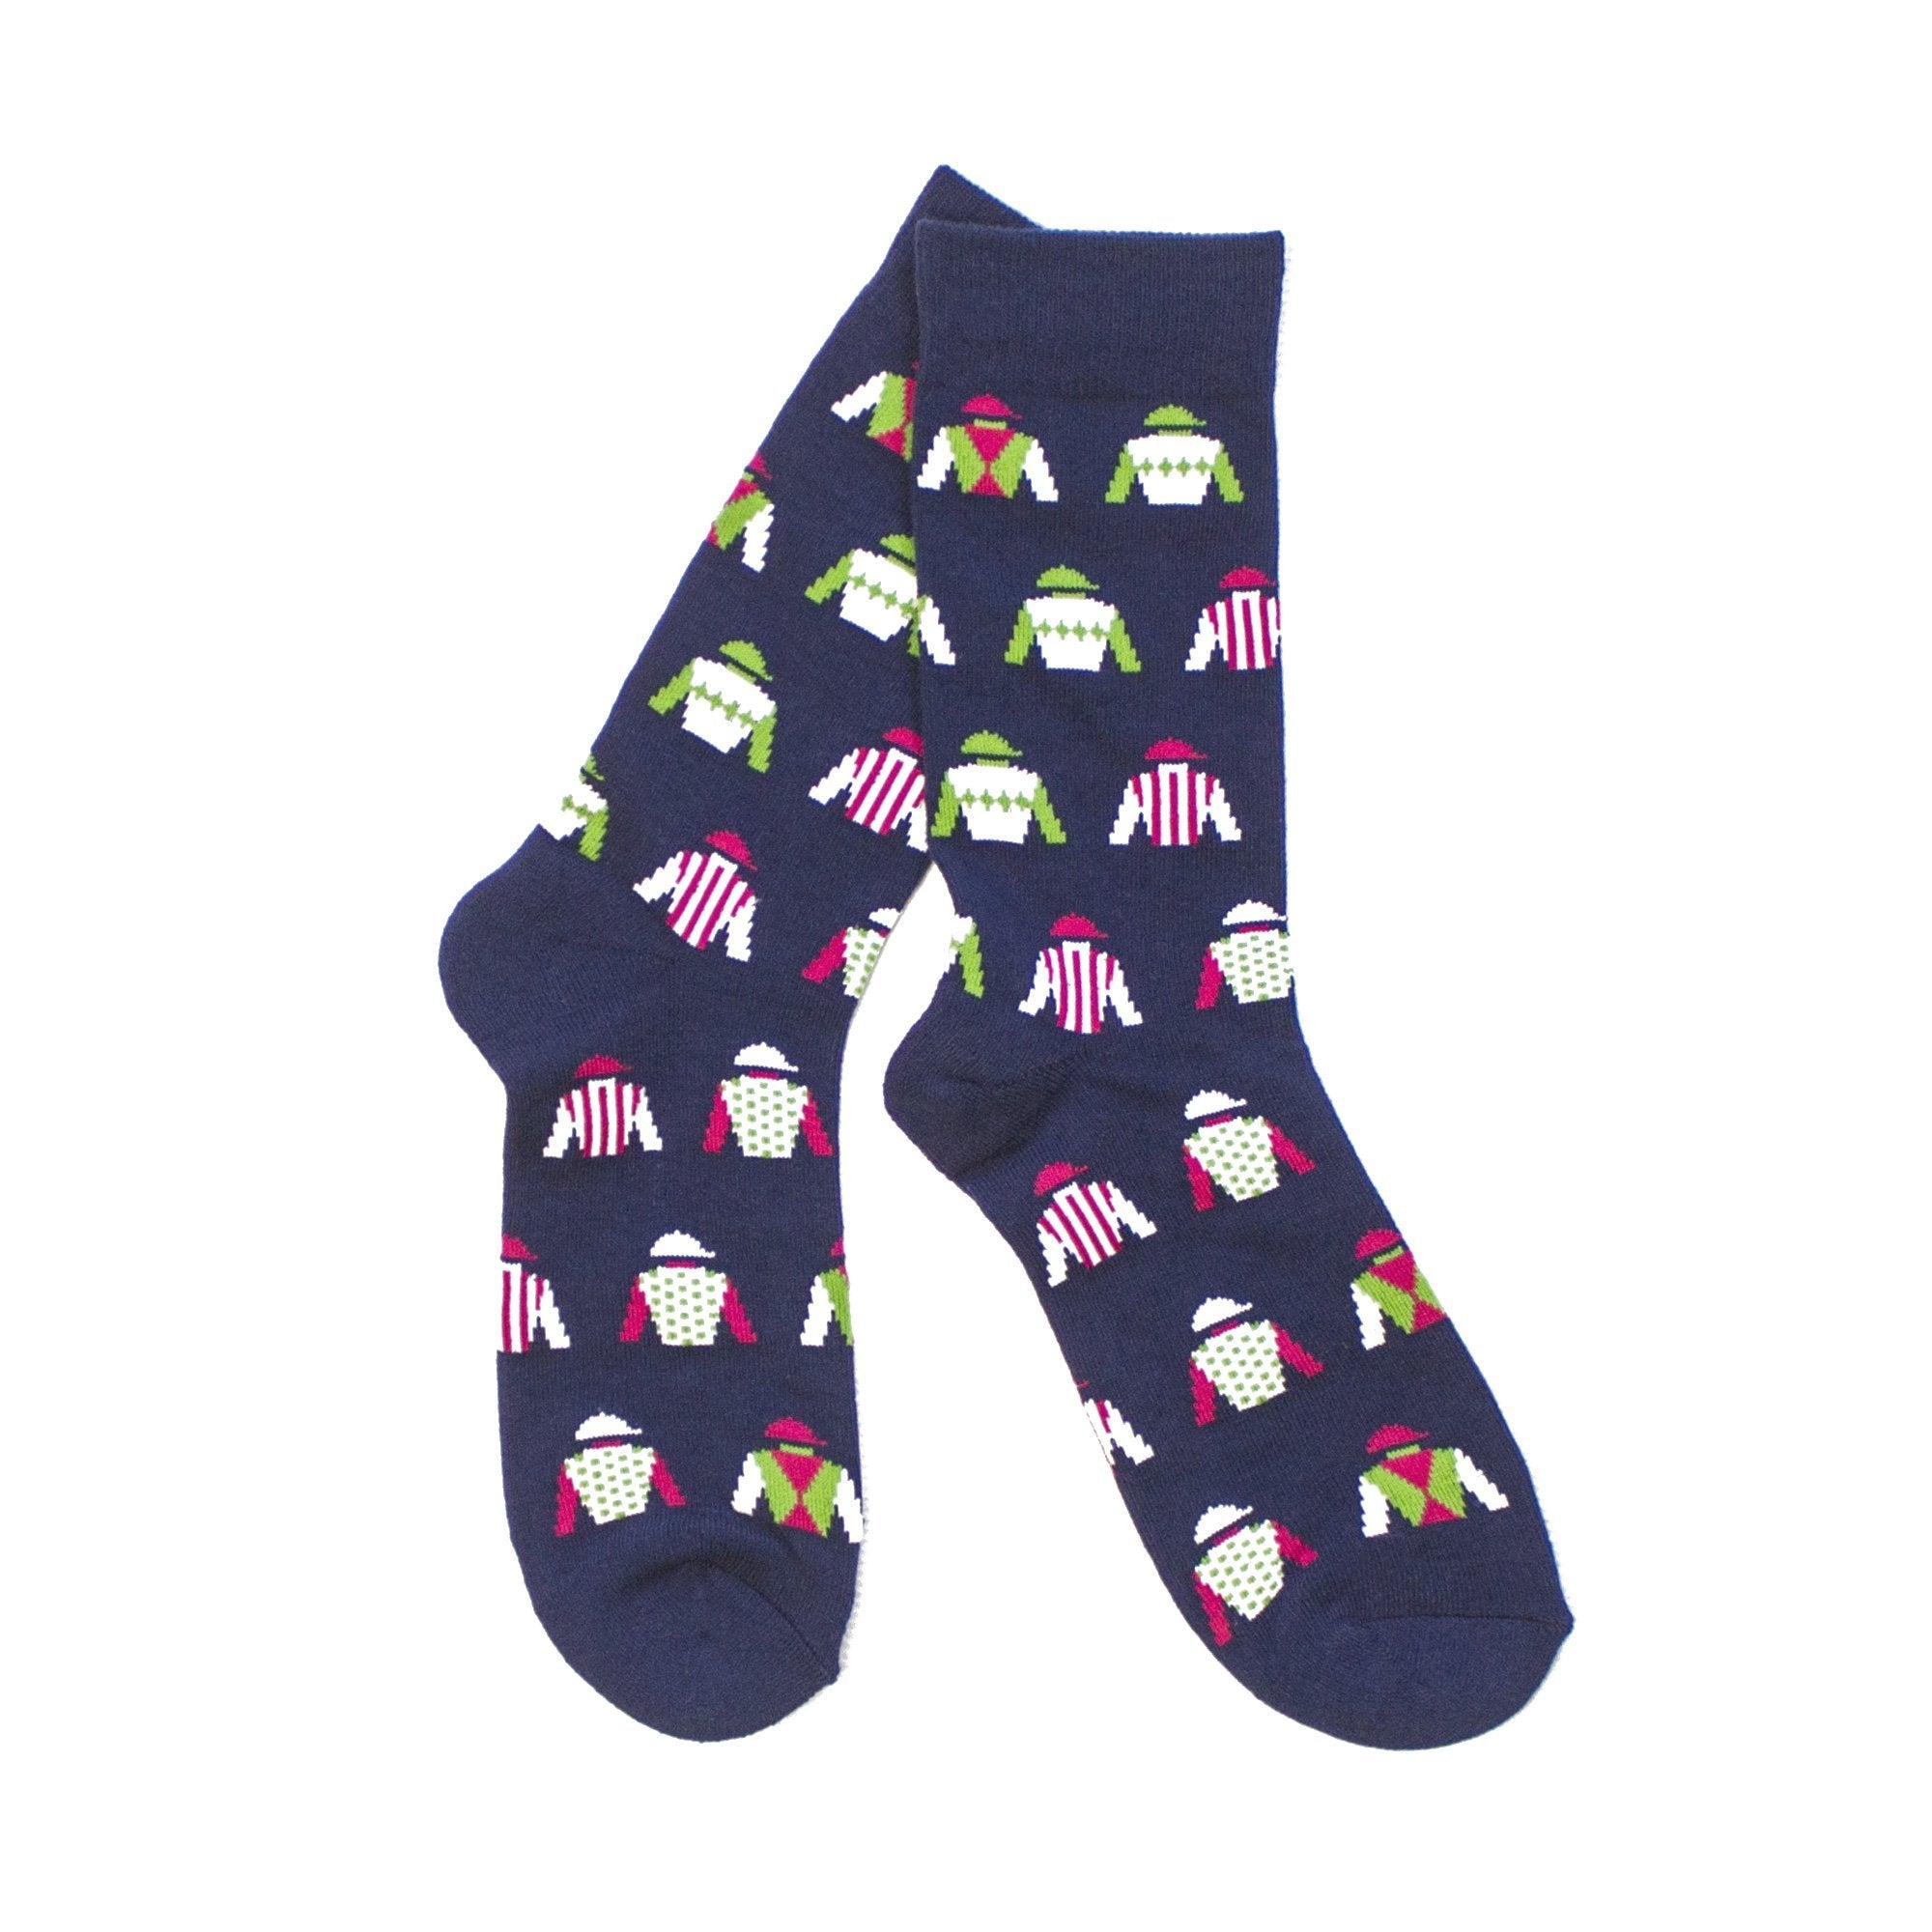 Jockey Silk Socks (Navy)-socks-Southern Socks